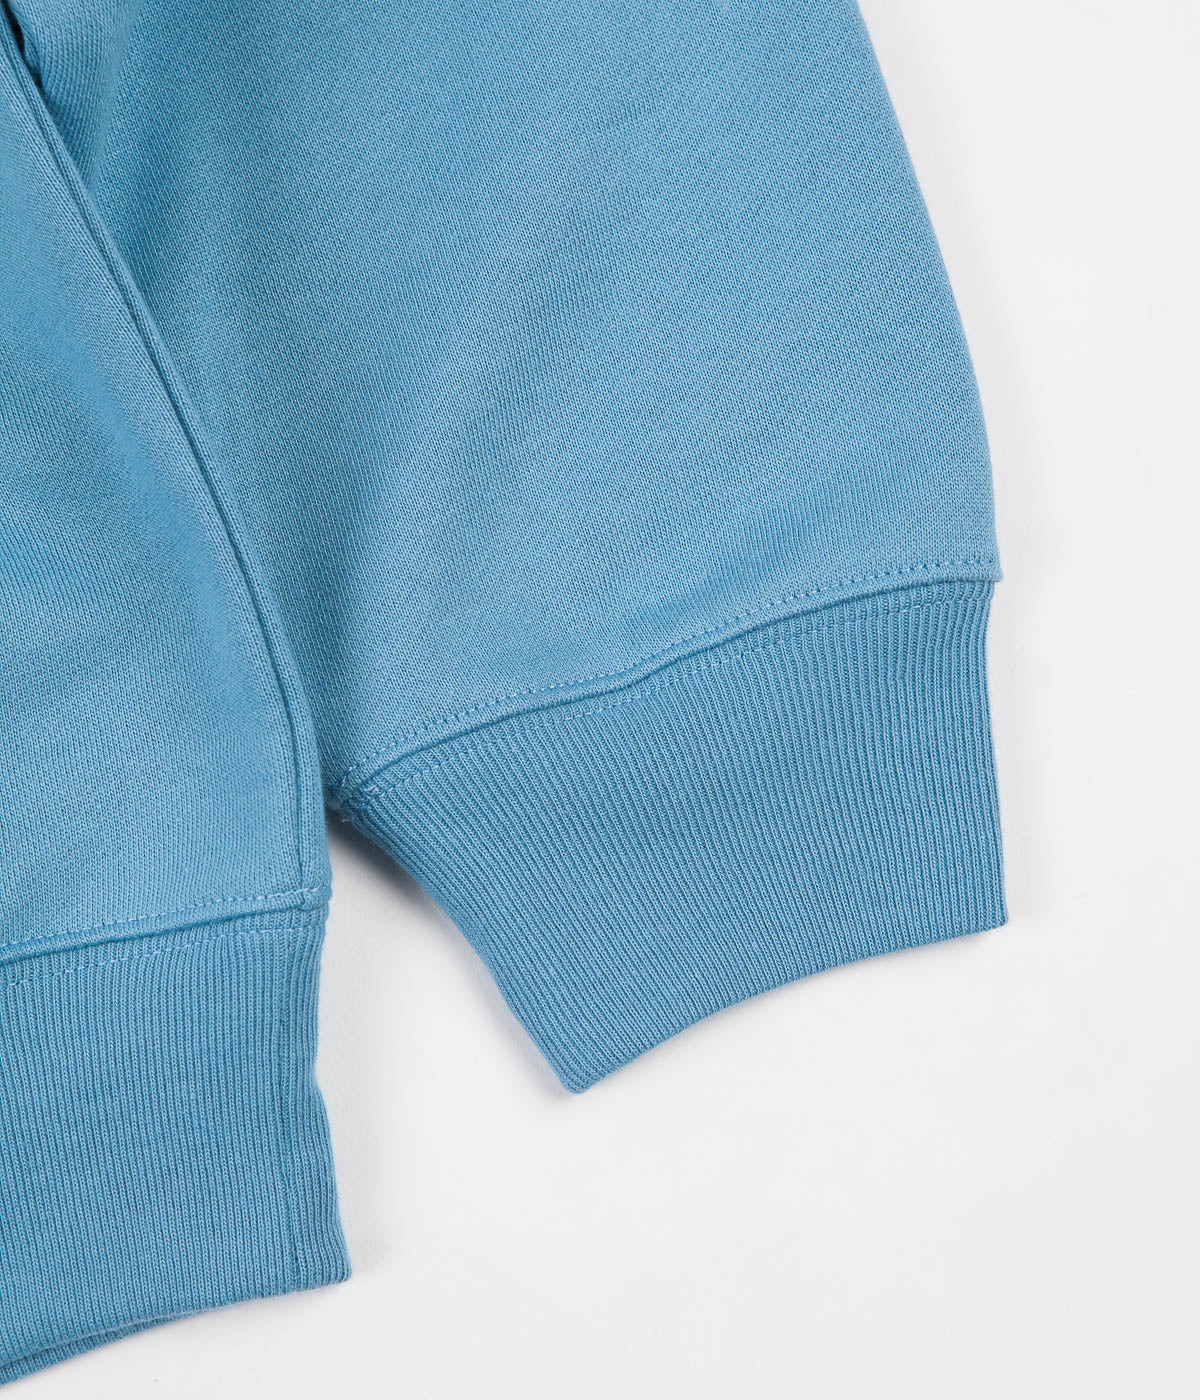 Polar Zip Neck Sweatshirt - Blue